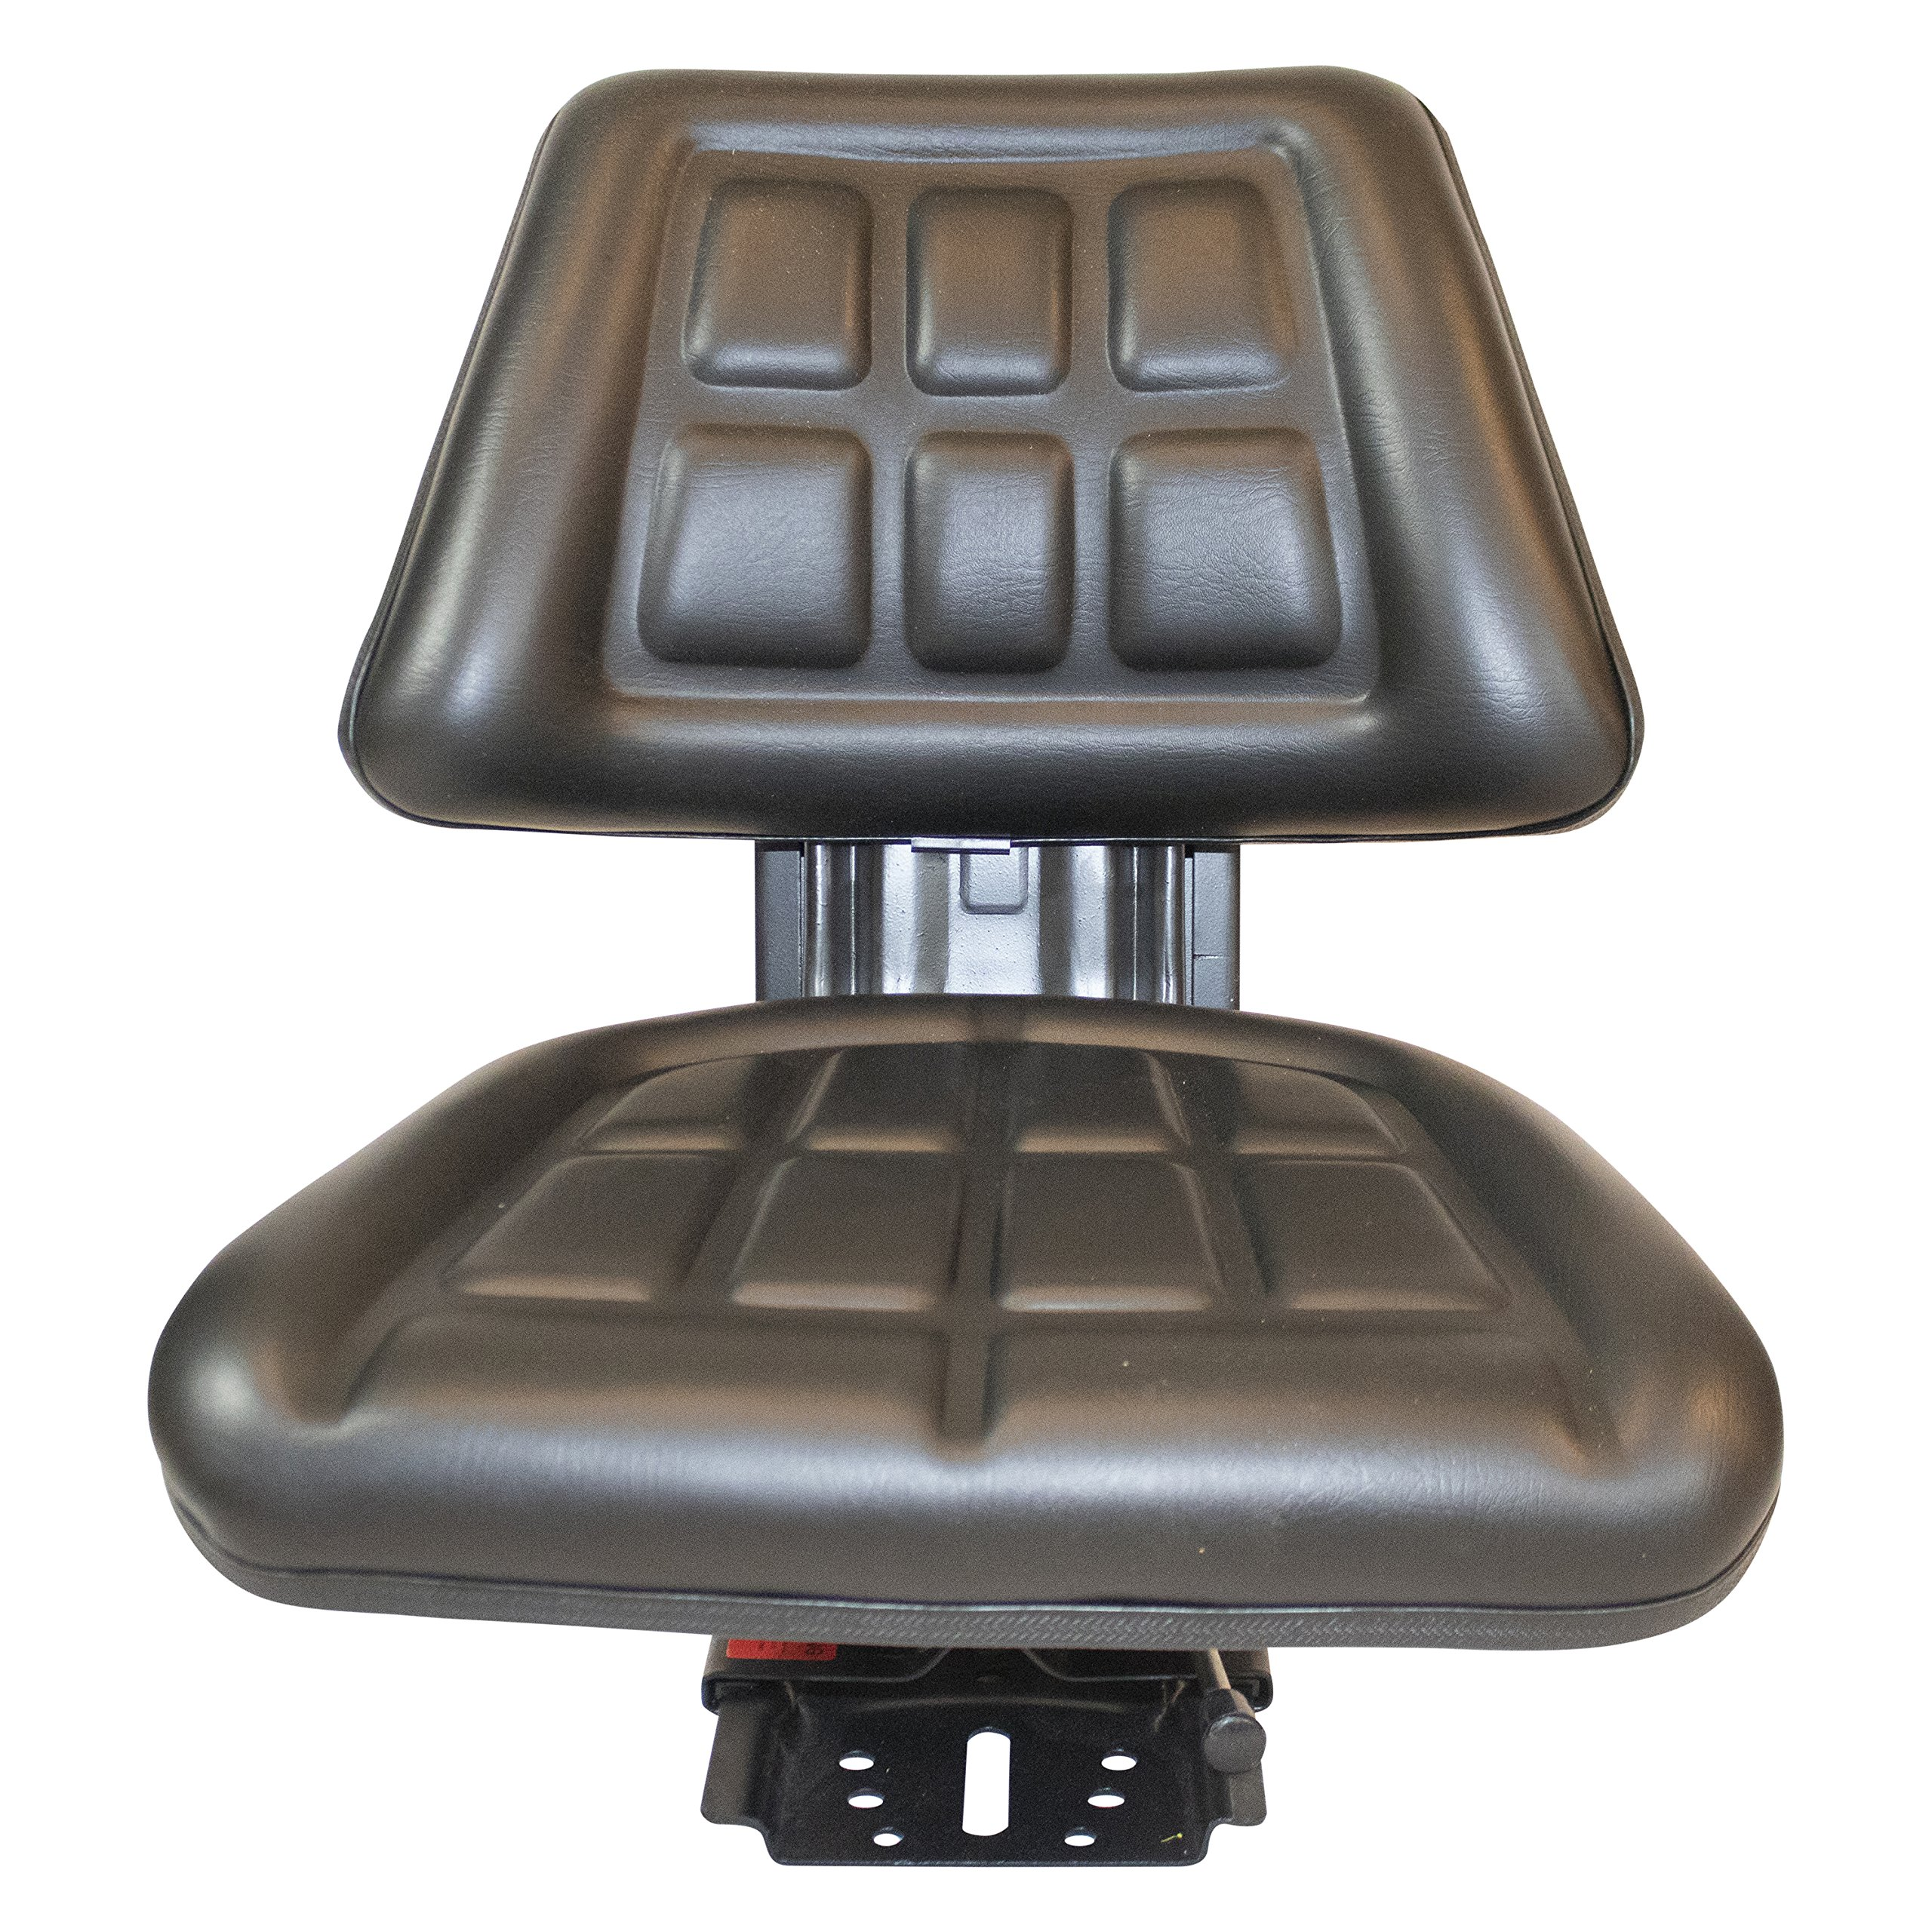 Black TRIBACK Suspension Tractor SEAT FITS Ford/New Holland 2000 2310 2600 2610 2810 2910 TRAC Brand(Same Day Shipping - Delivers in 1-4 Business Days) by TRAC SEATS